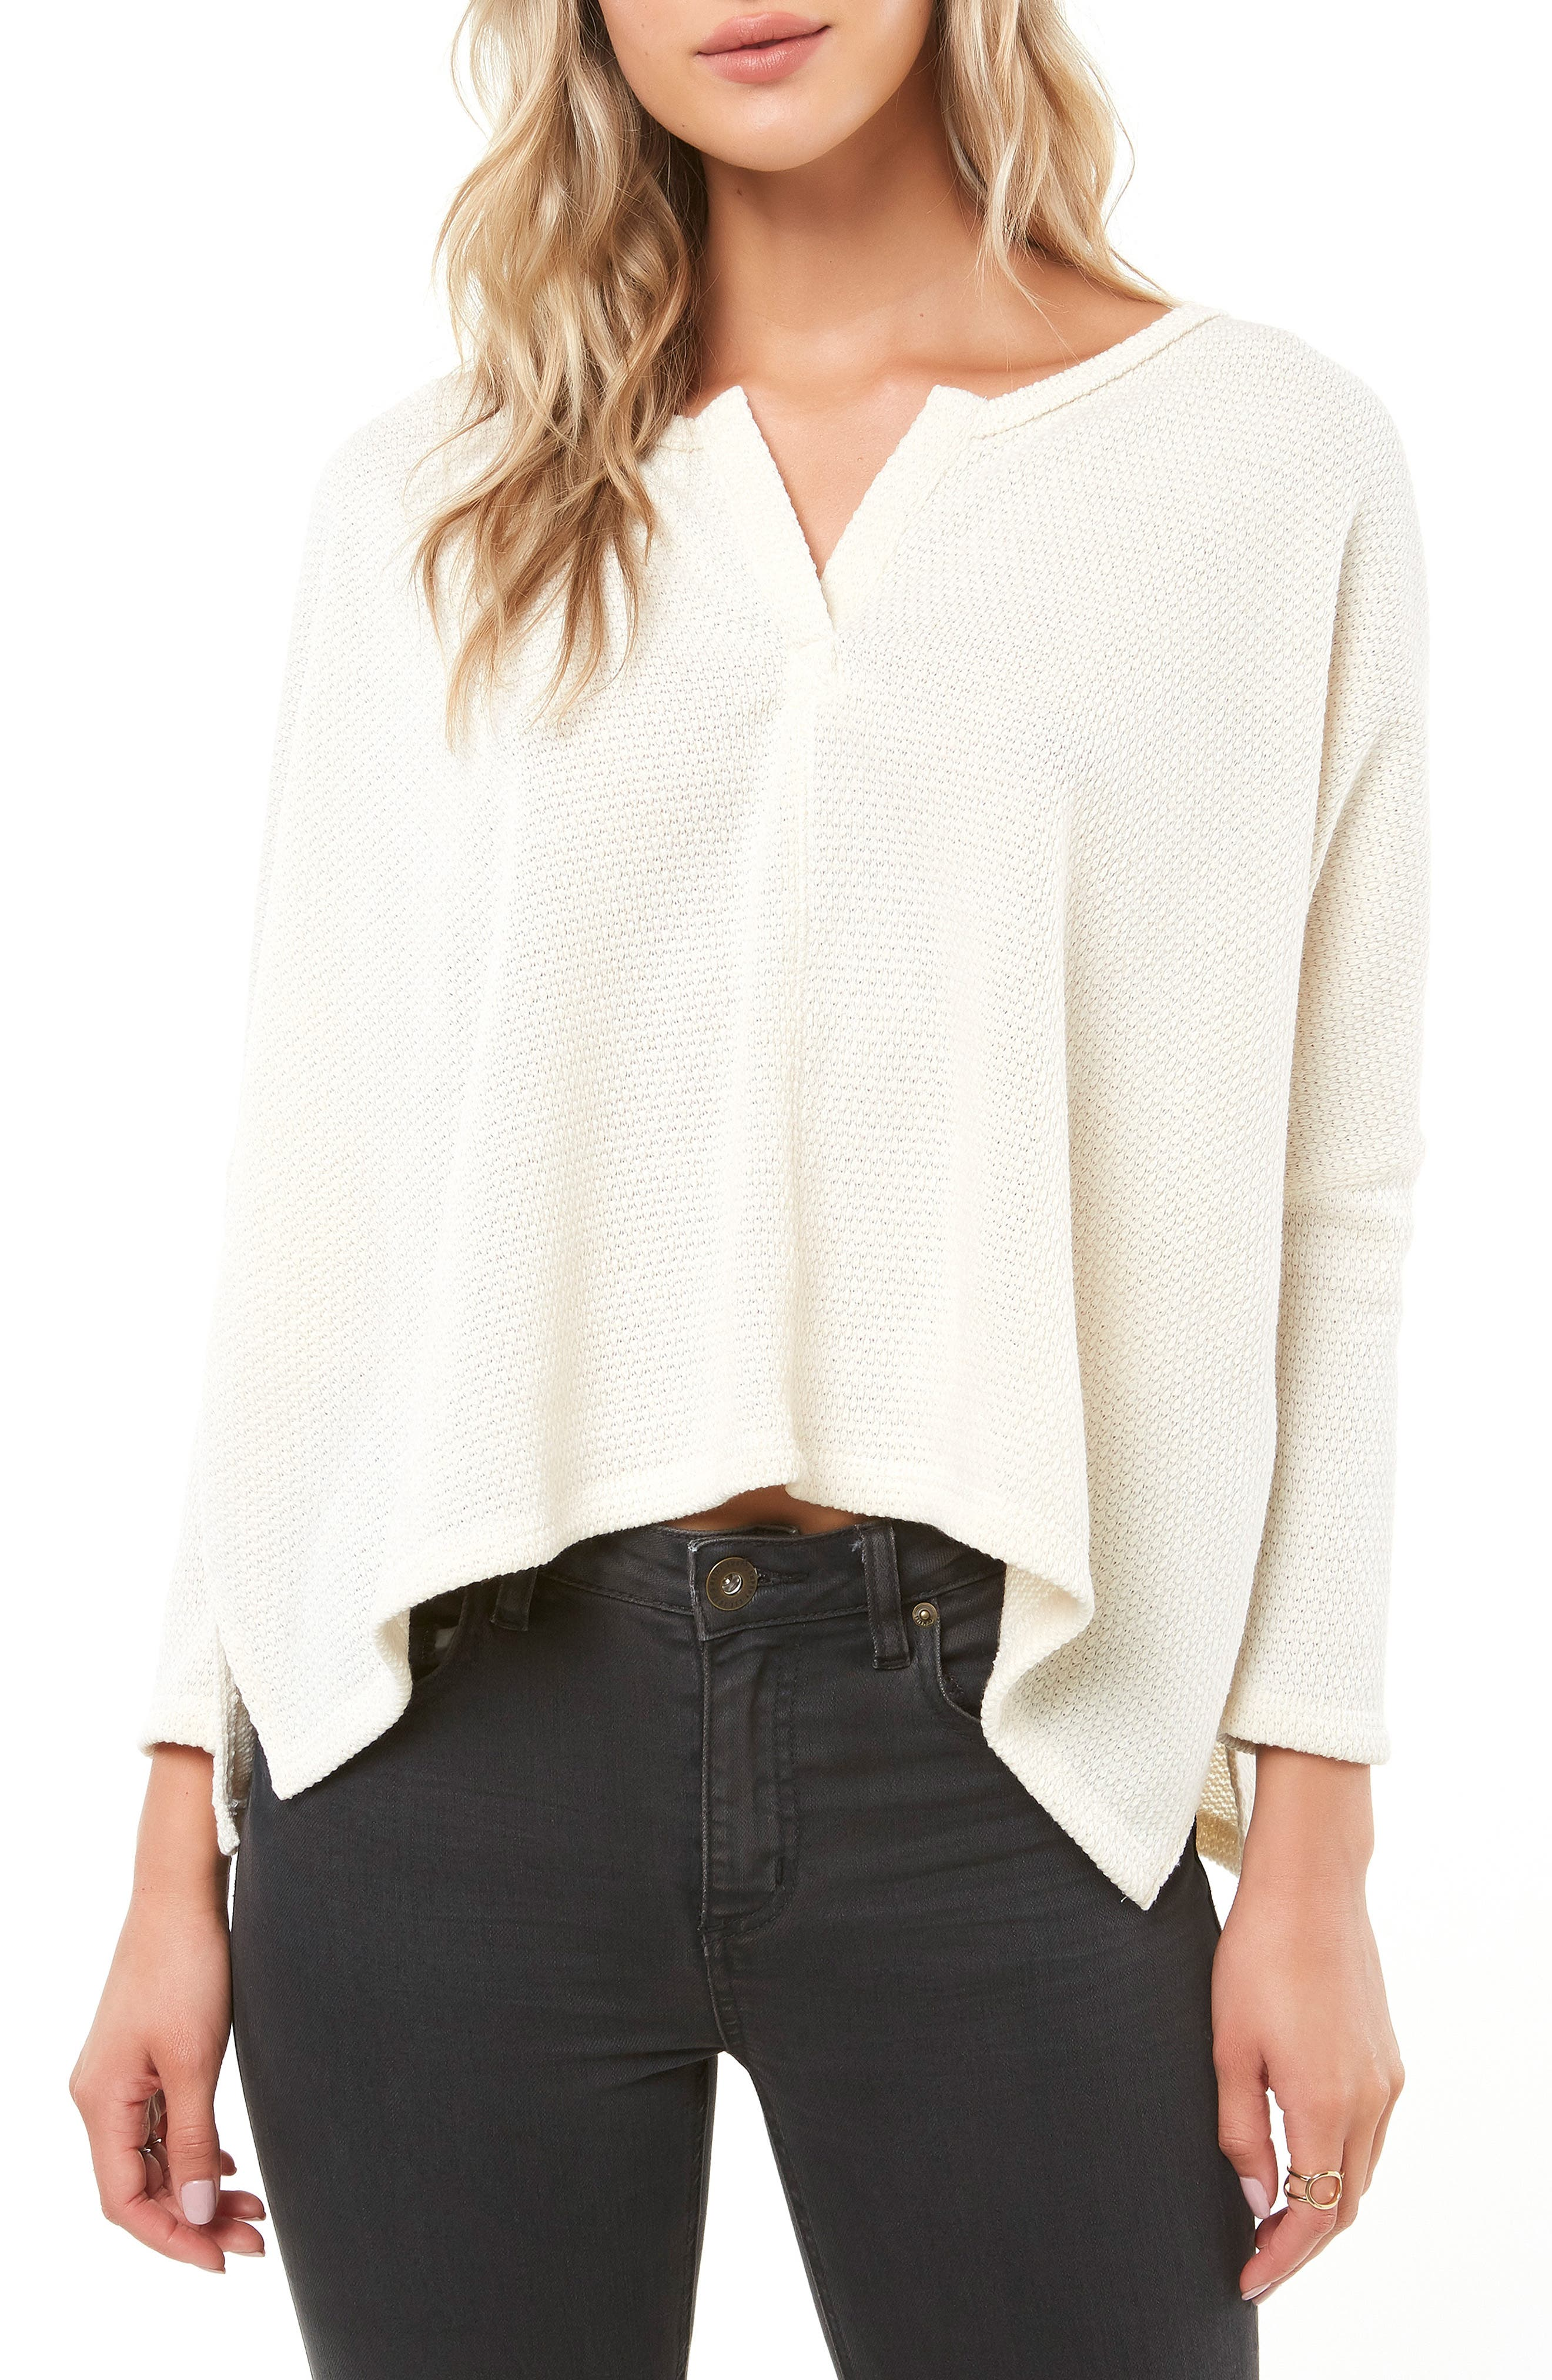 White Blouses for Juniors